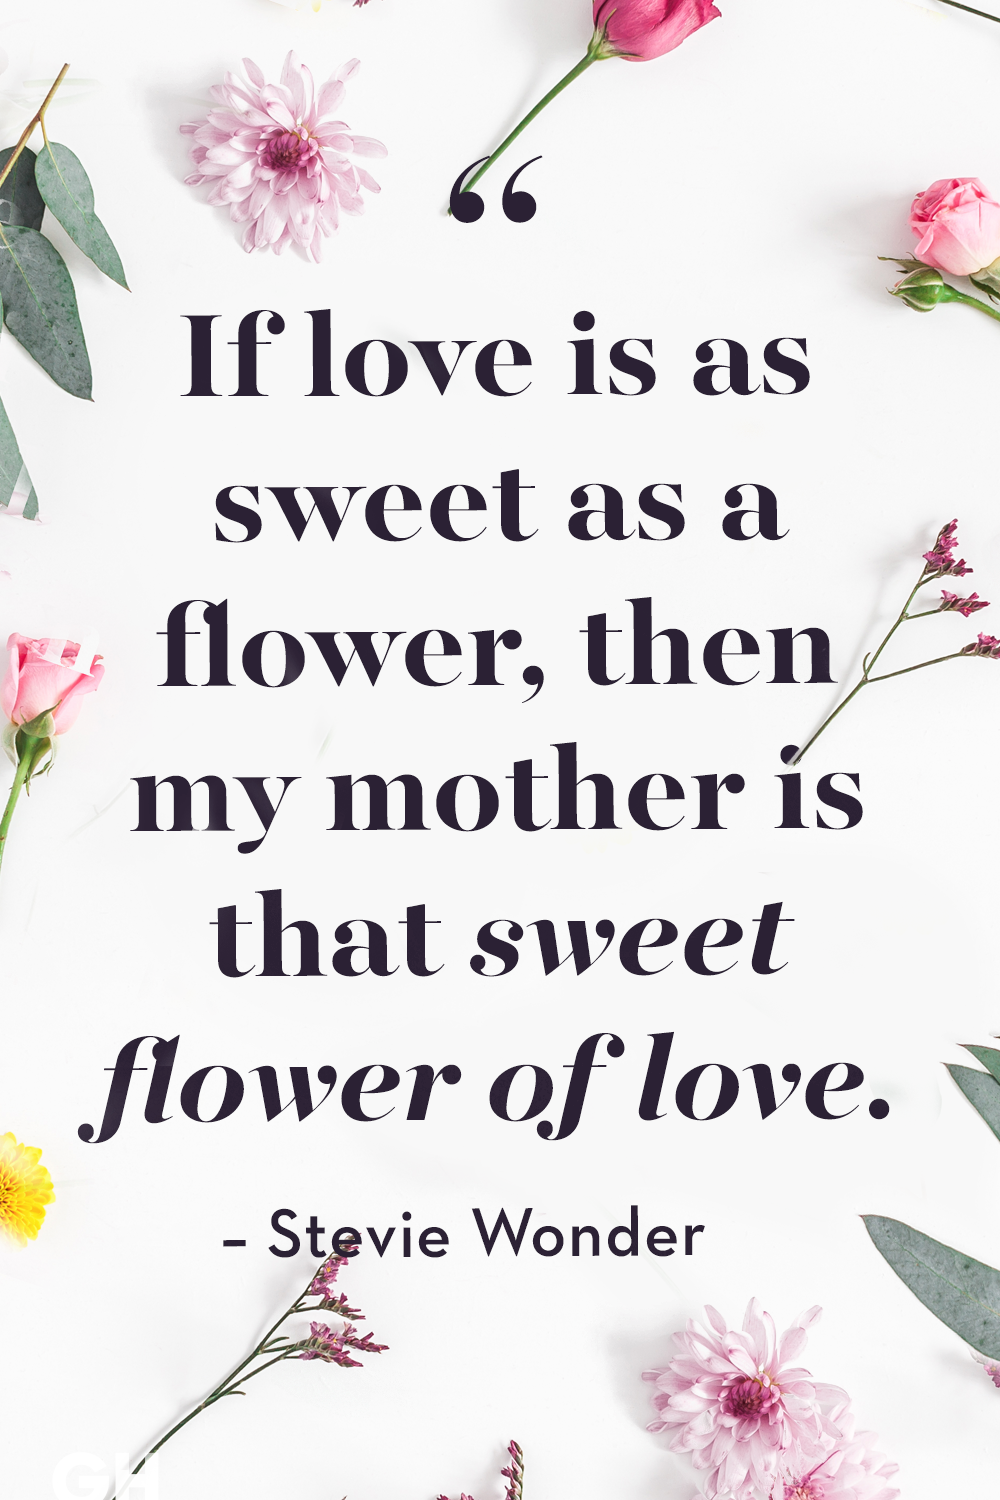 Beautiful Lines On Mother's Day Twitter thumbnail